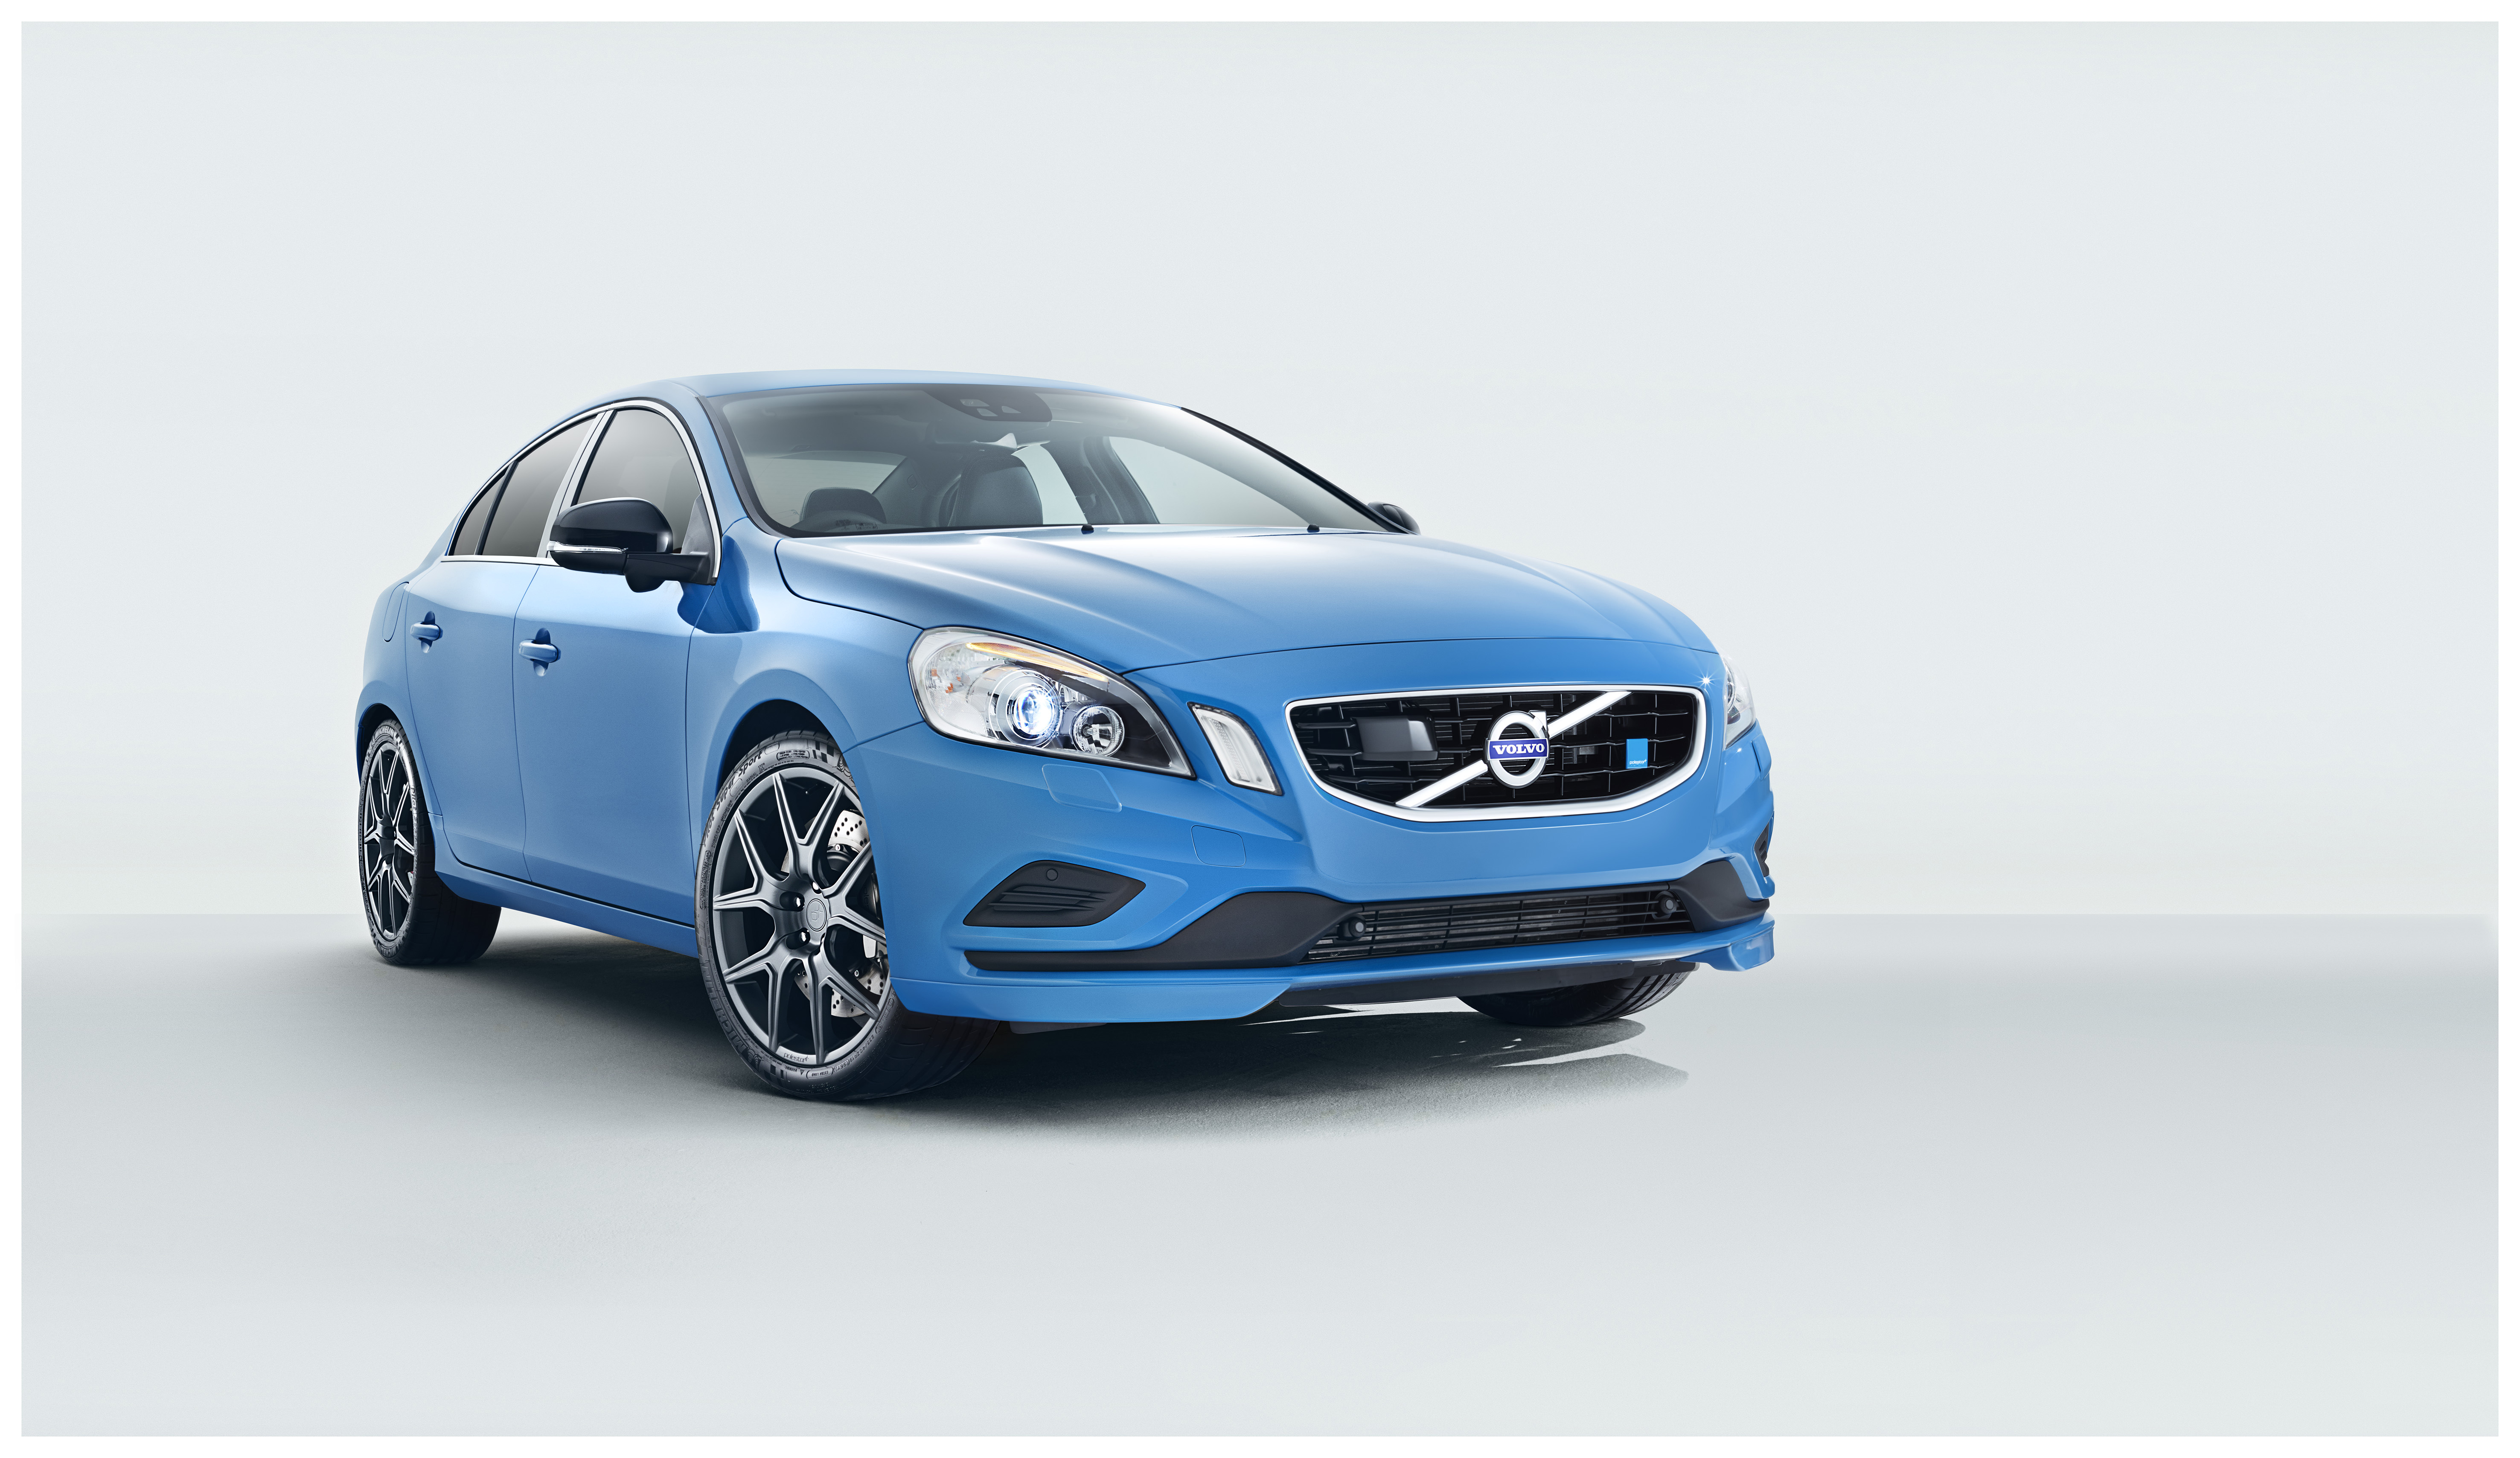 production volvo s60 polestar is finally revealed and it. Black Bedroom Furniture Sets. Home Design Ideas